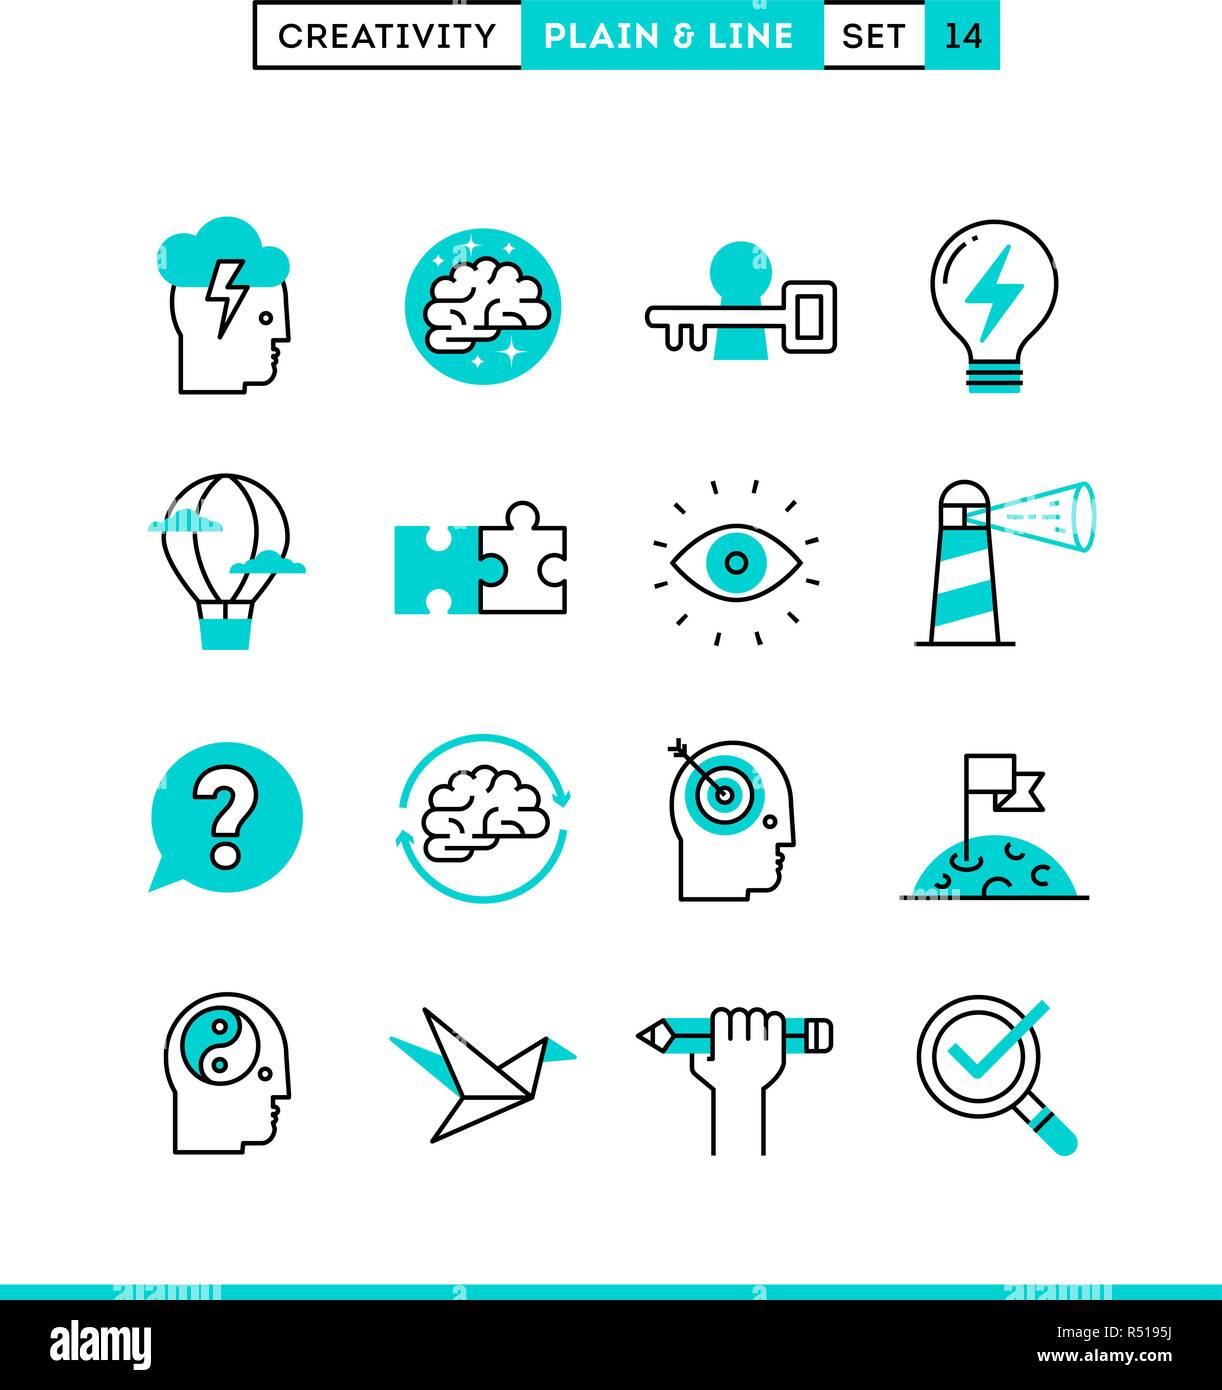 Creativity, imagination, problem solving, mind power and more. Plain and line icons set, flat design - Stock Vector